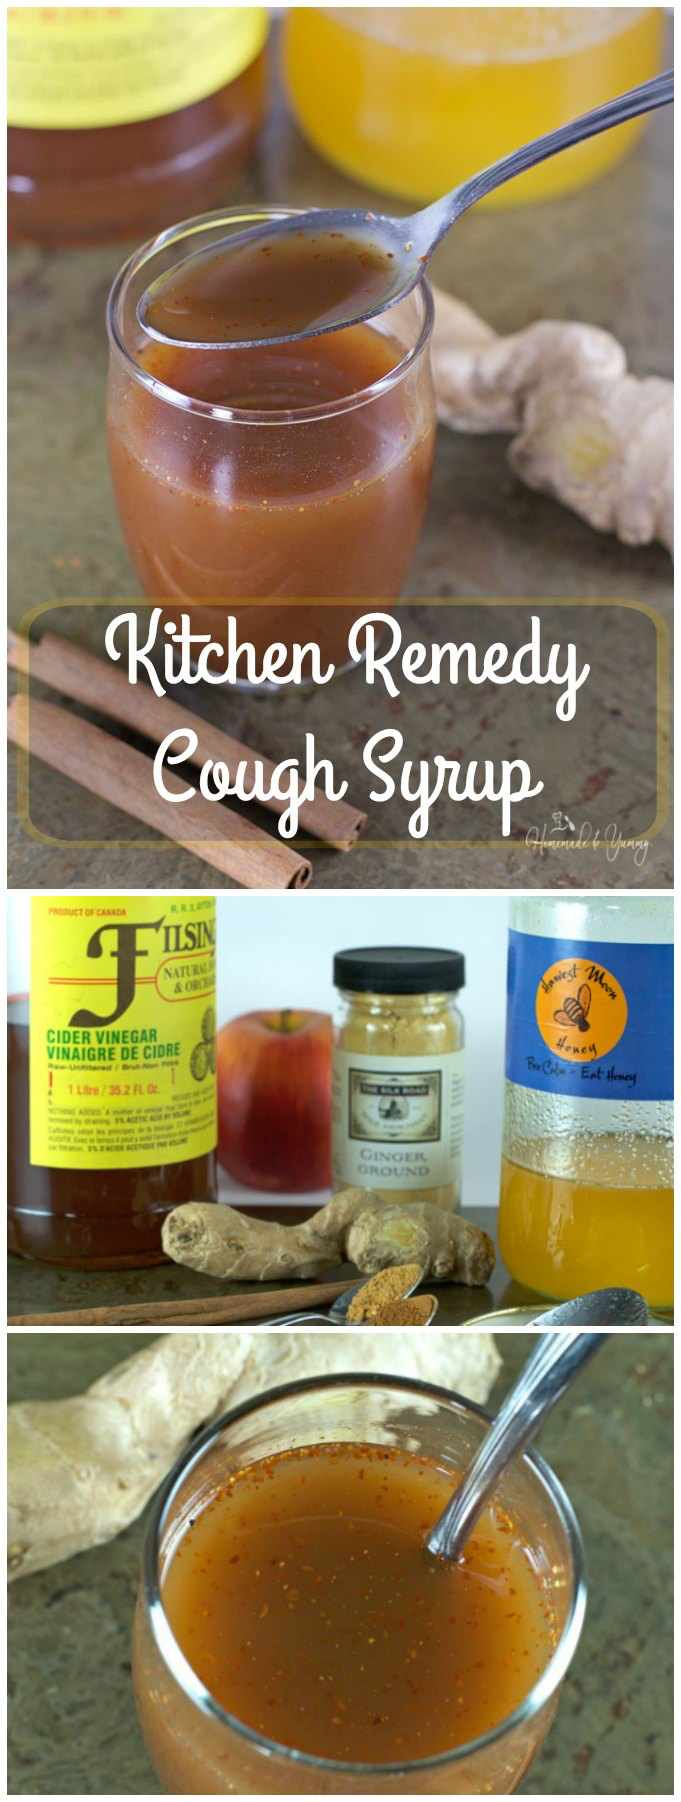 Kitchen Remedy Cough Syrup made from your kitchen pharmacy. All natural ingredients to help you feel better. | homemadeandyummy.com